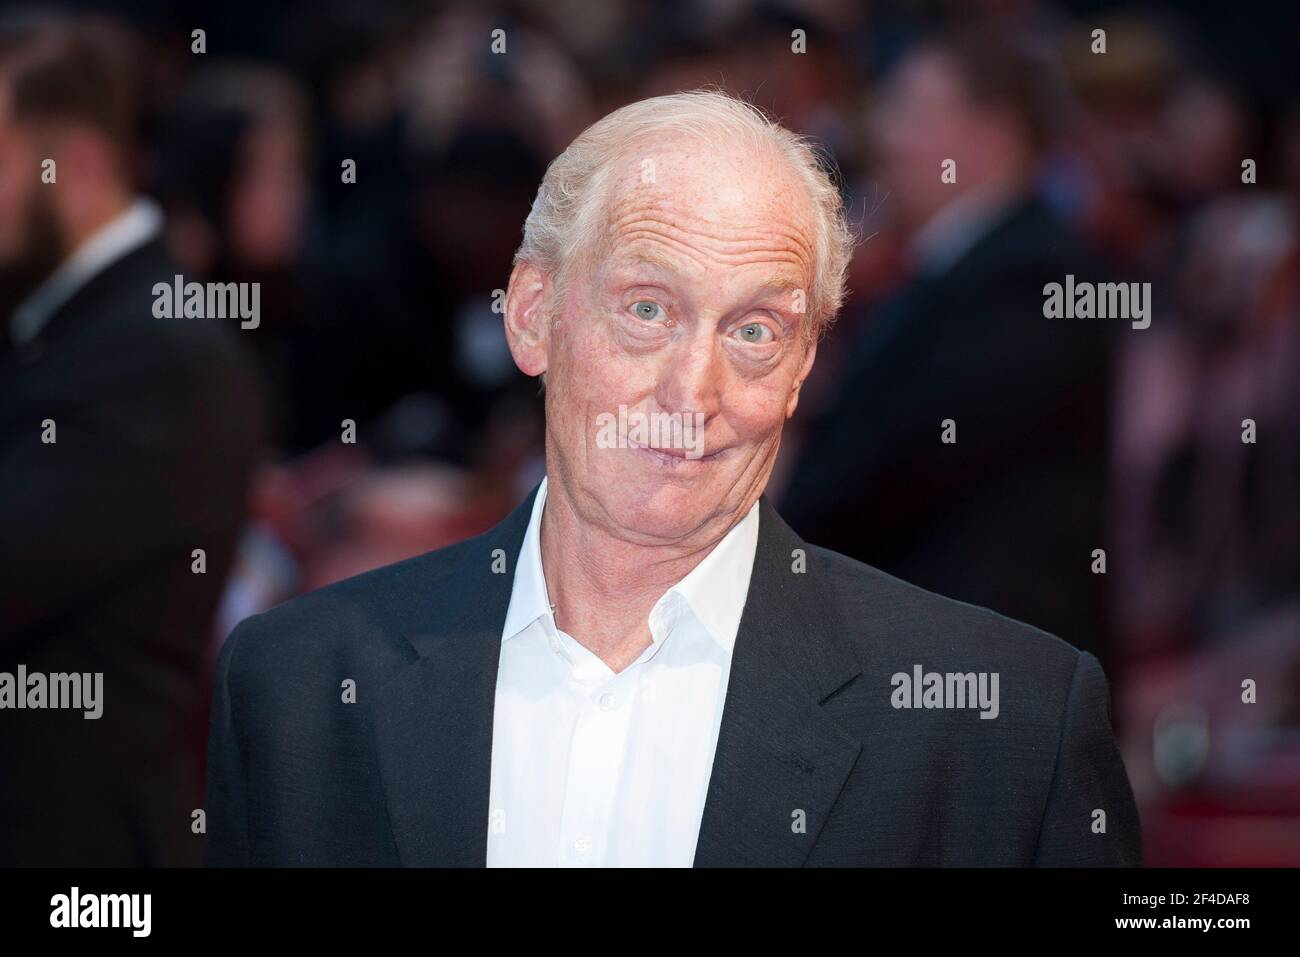 Charles Dance arrives at the Dracula Untold premiere at the Odeon, Leicester Square - London Stock Photo